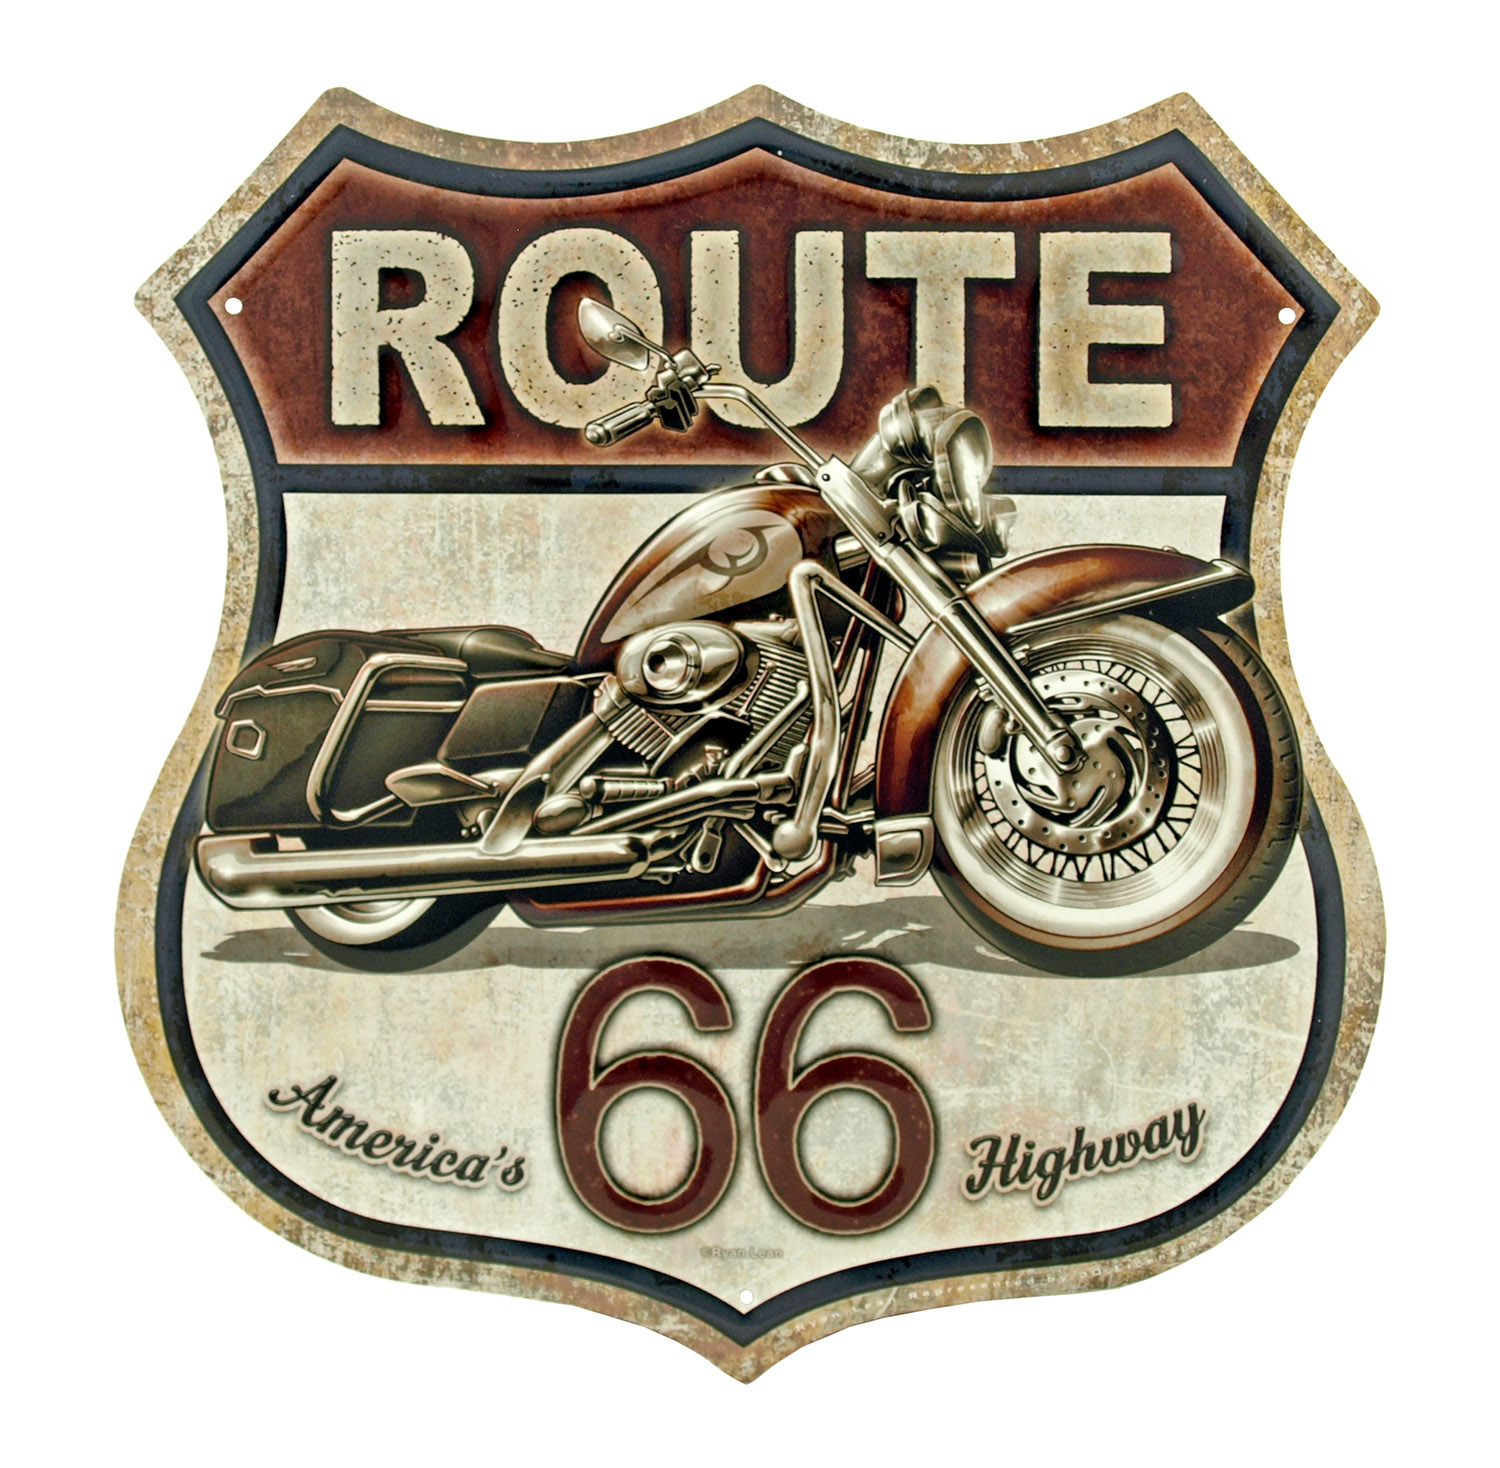 Route 66 America's Highway Tin Metal Motorcycle Sign